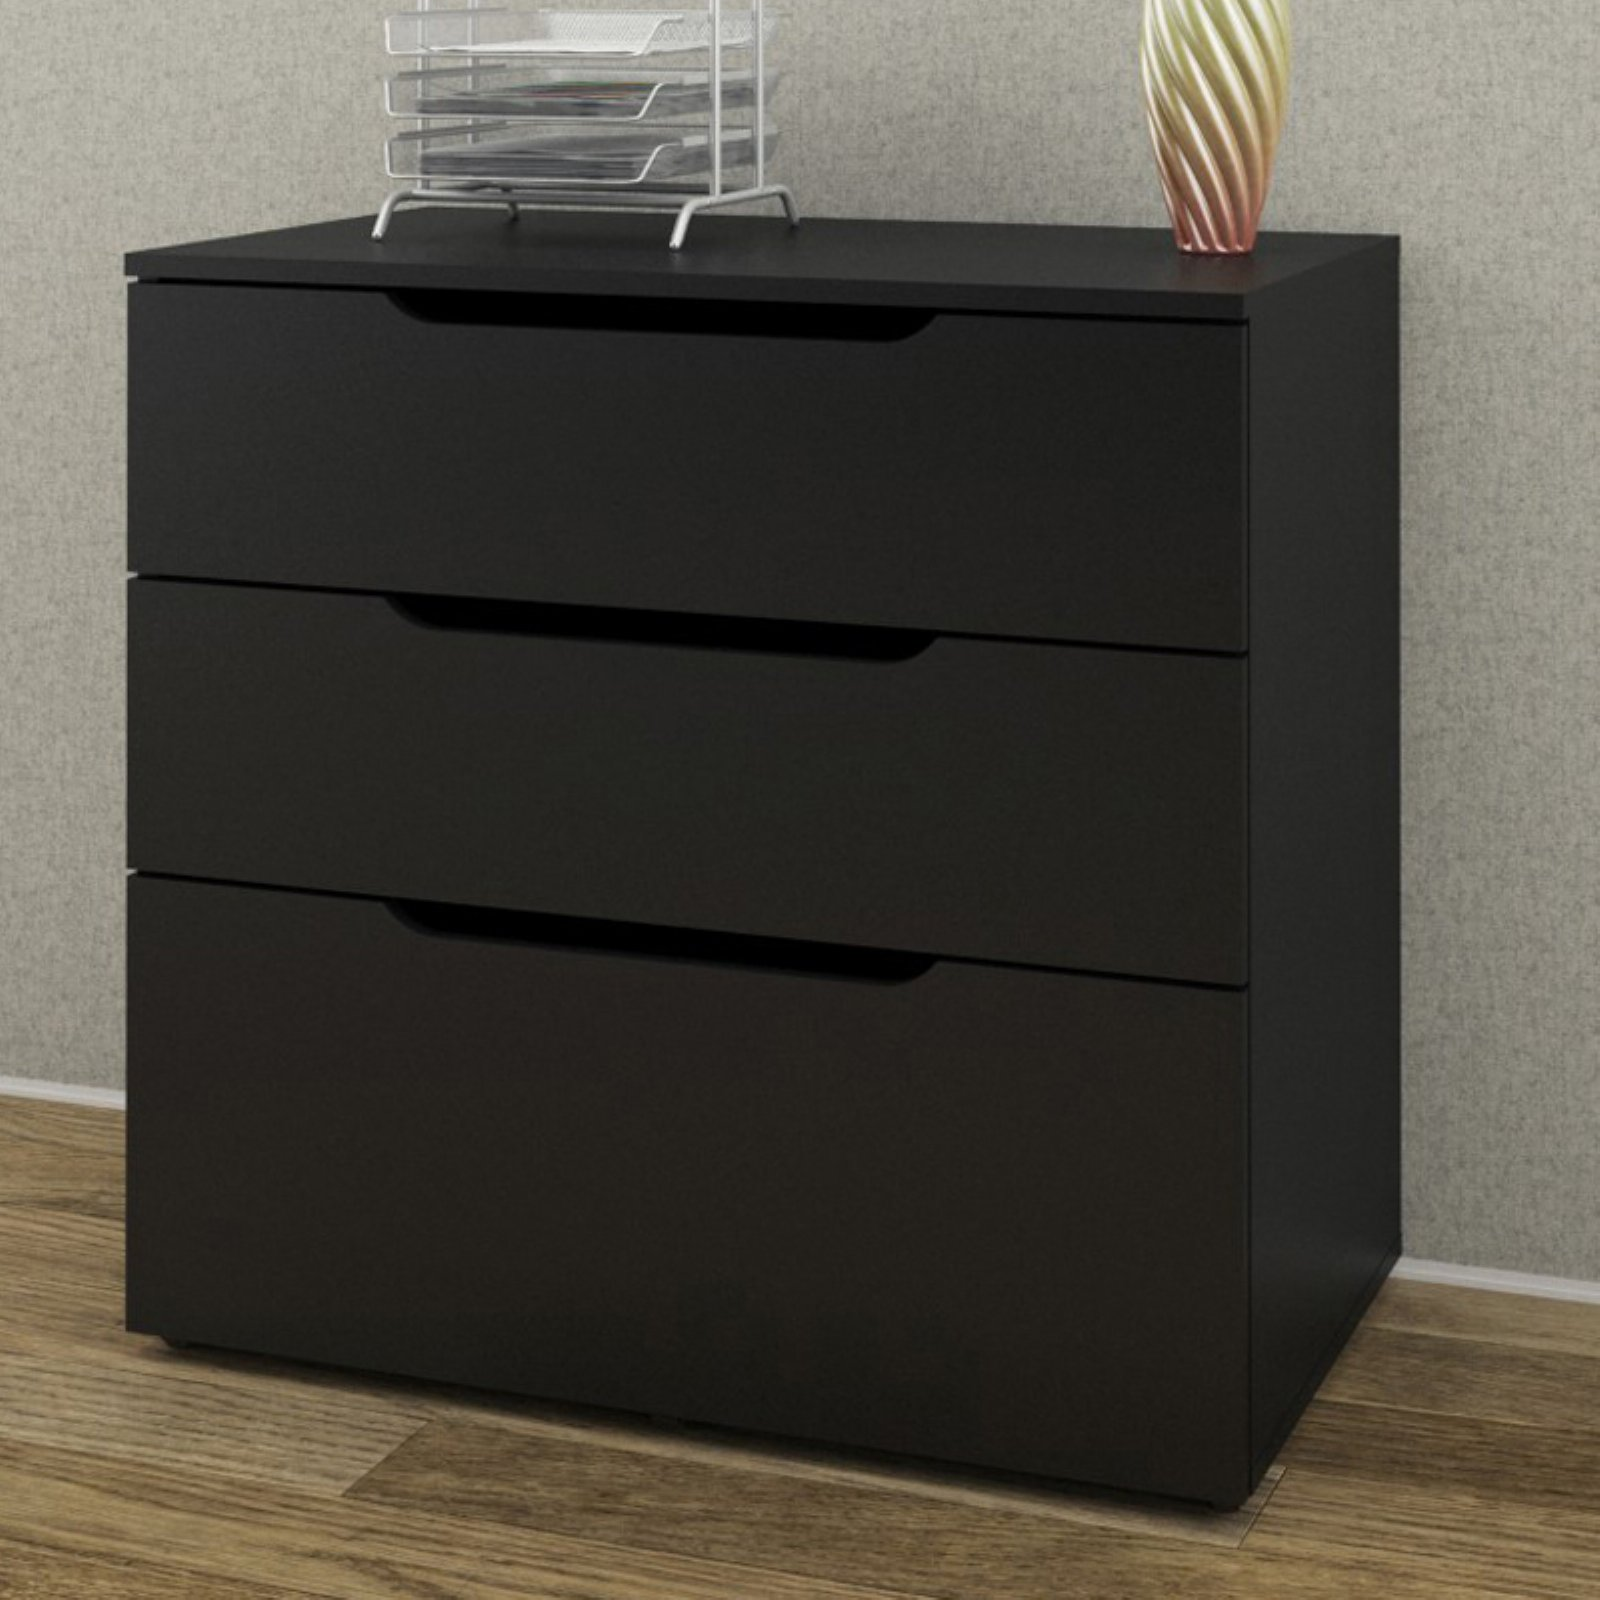 Nexera 3 Drawer Vertical Wood Filing Cabinet, Black